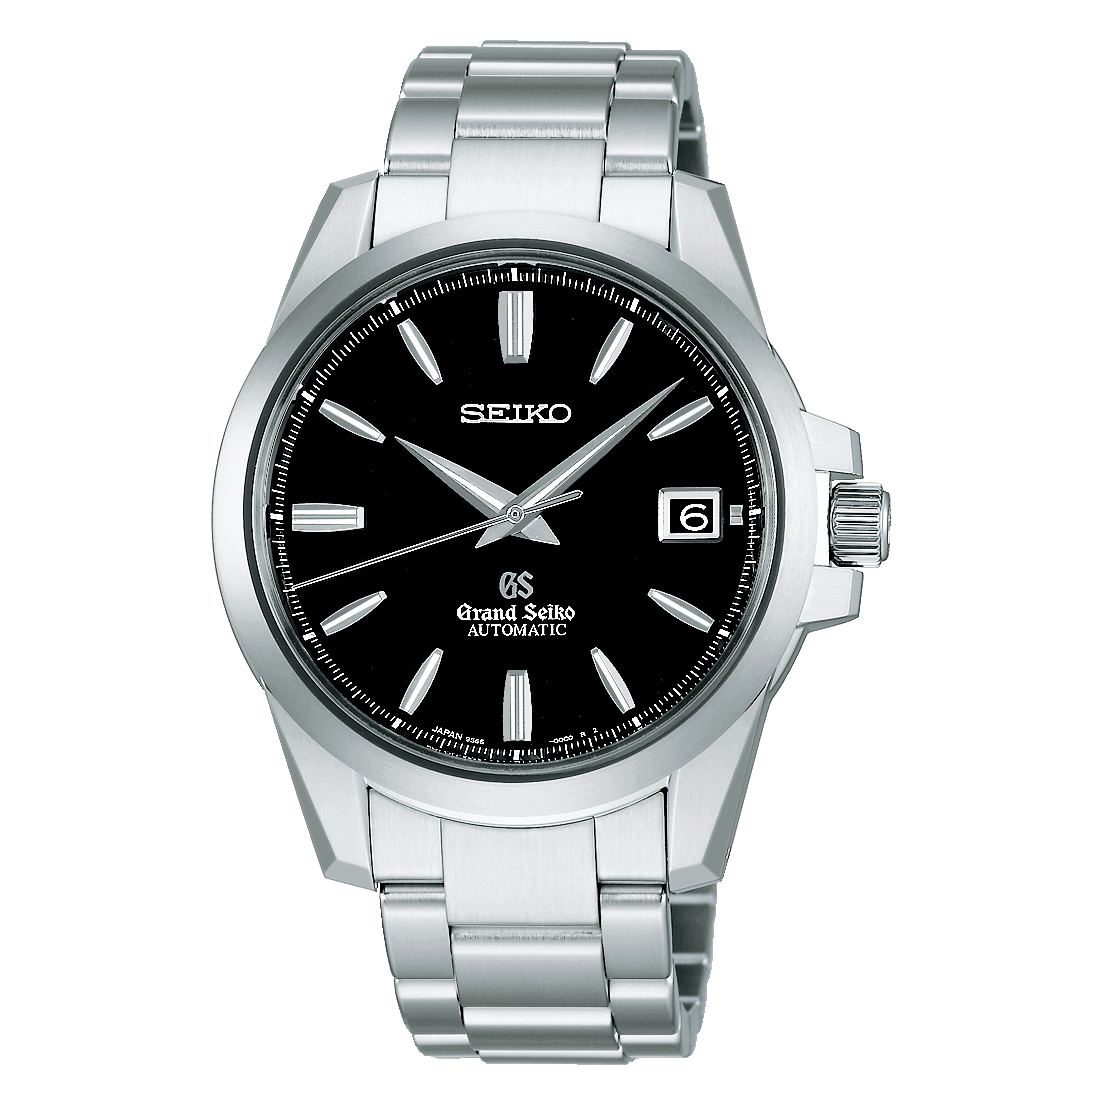 Grand Seiko Mechanical Calibre 9S65